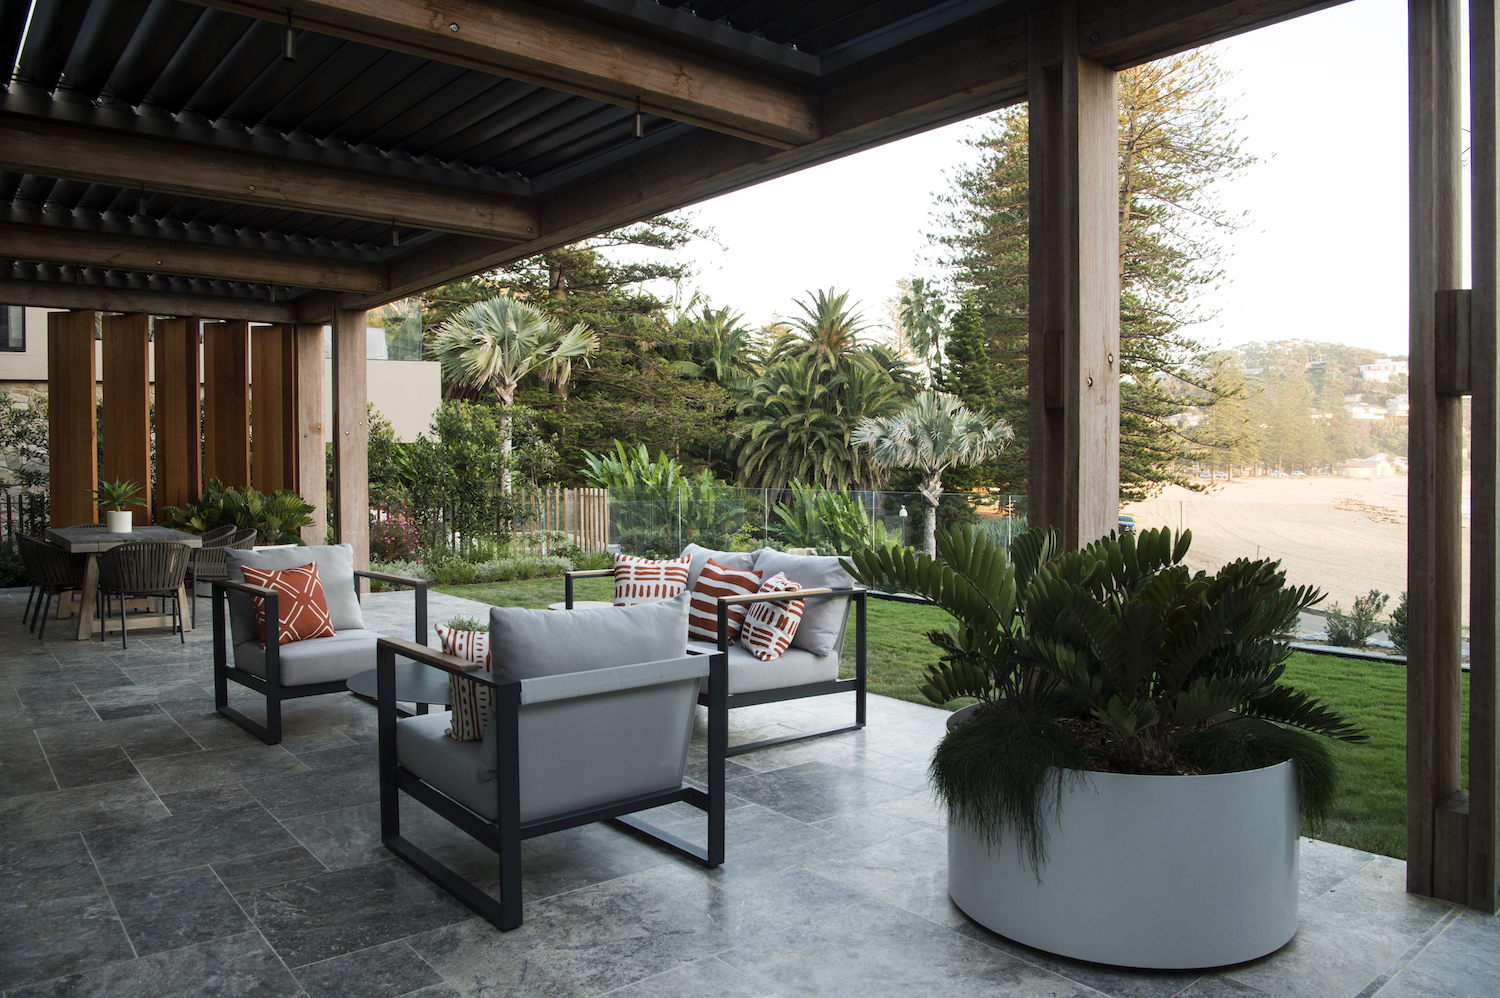 It's all about the view in this outdoor space